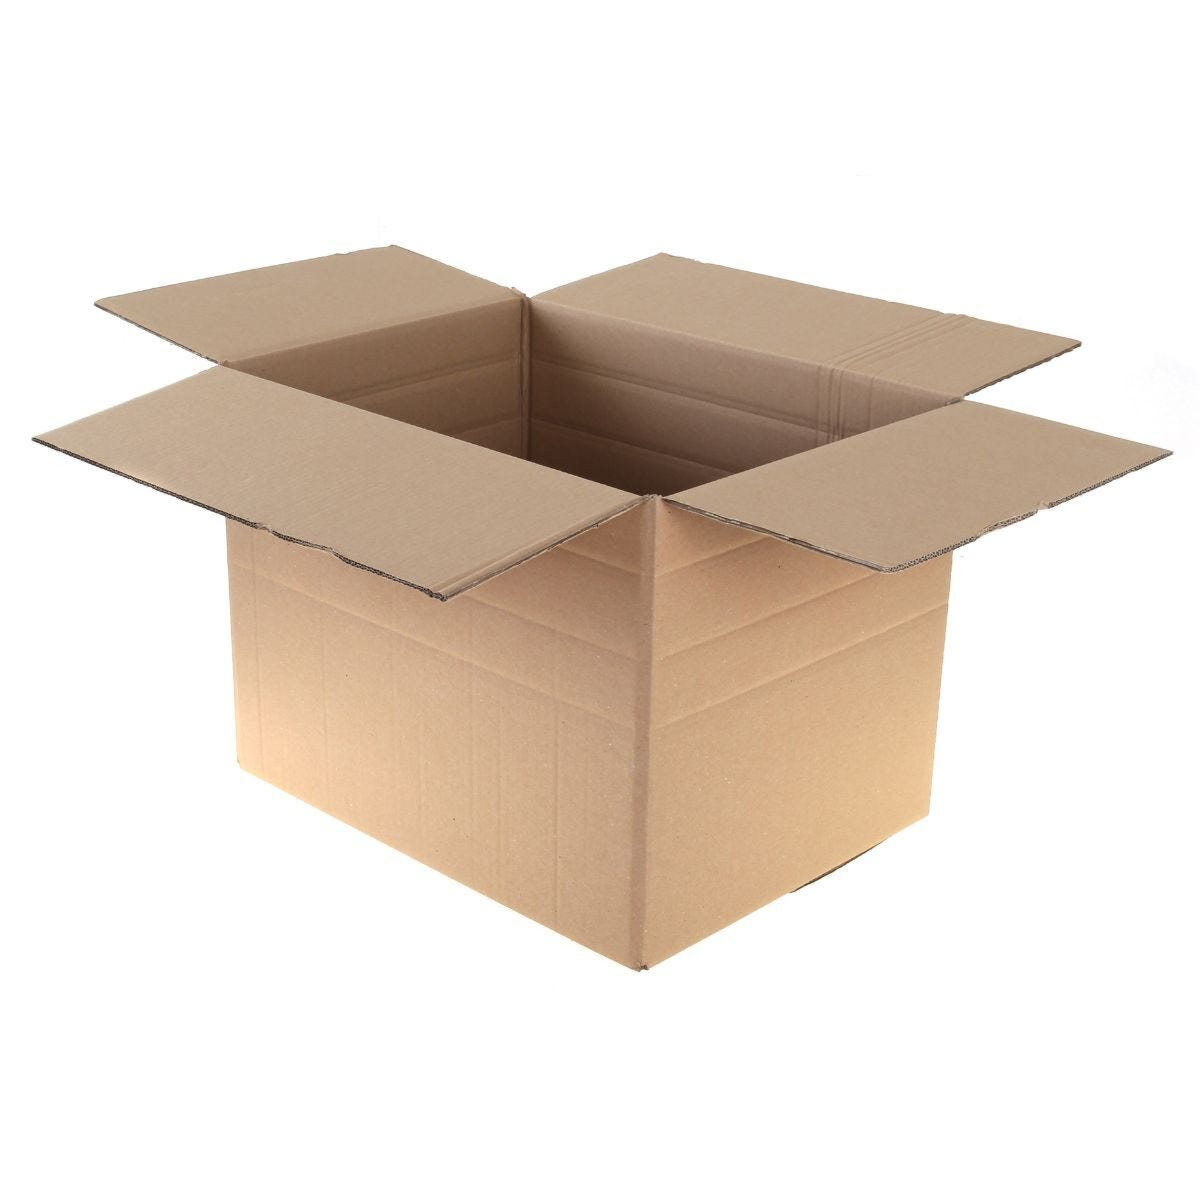 Double Walled Carton Box 610x457x457mm Pack of 15